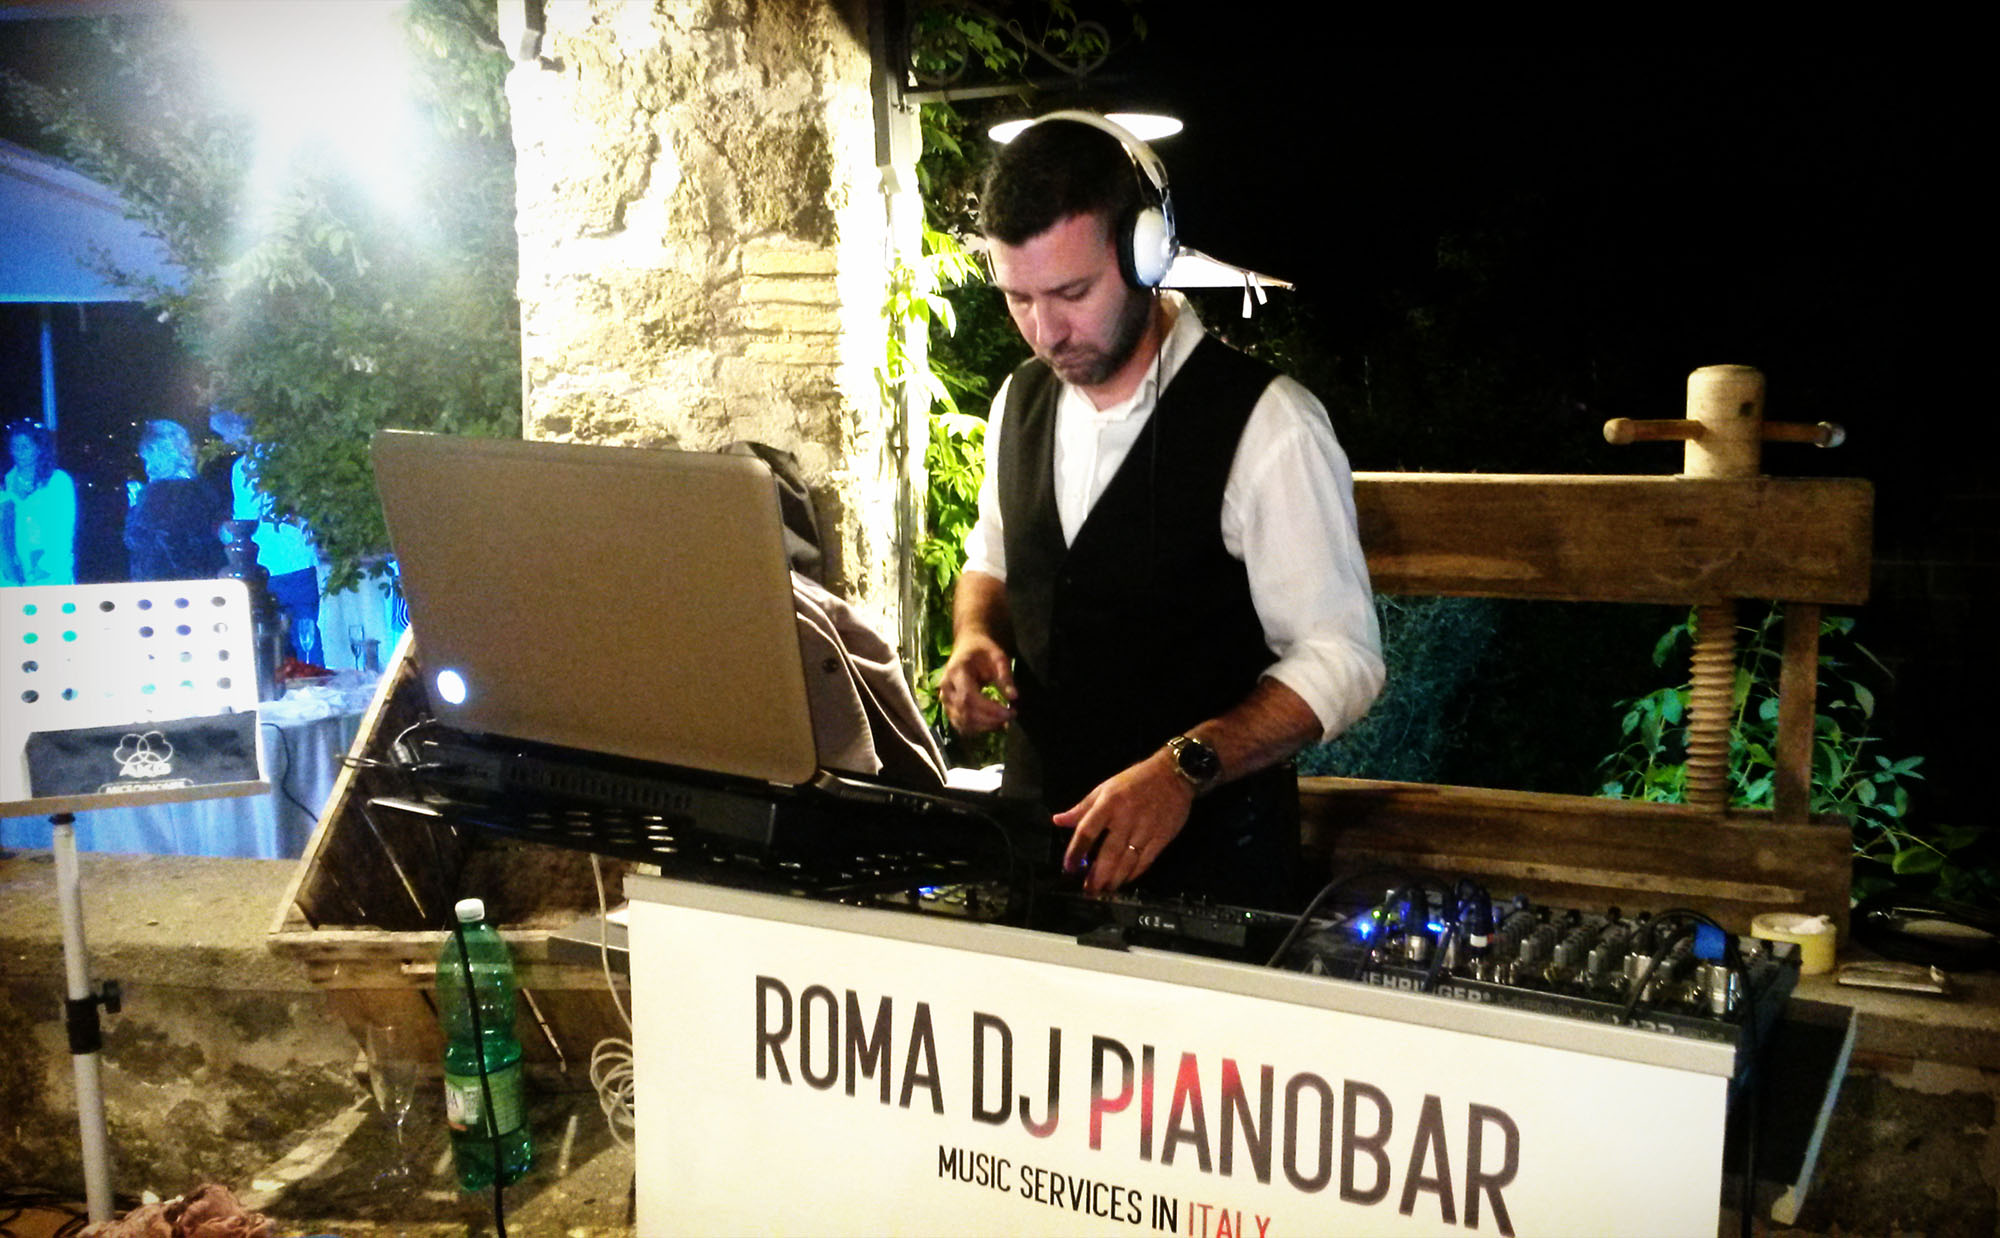 wedding Dj italy, wedding dj Roma, dj per matrimonio, dj Roma, wedding party Dj in tutta italia